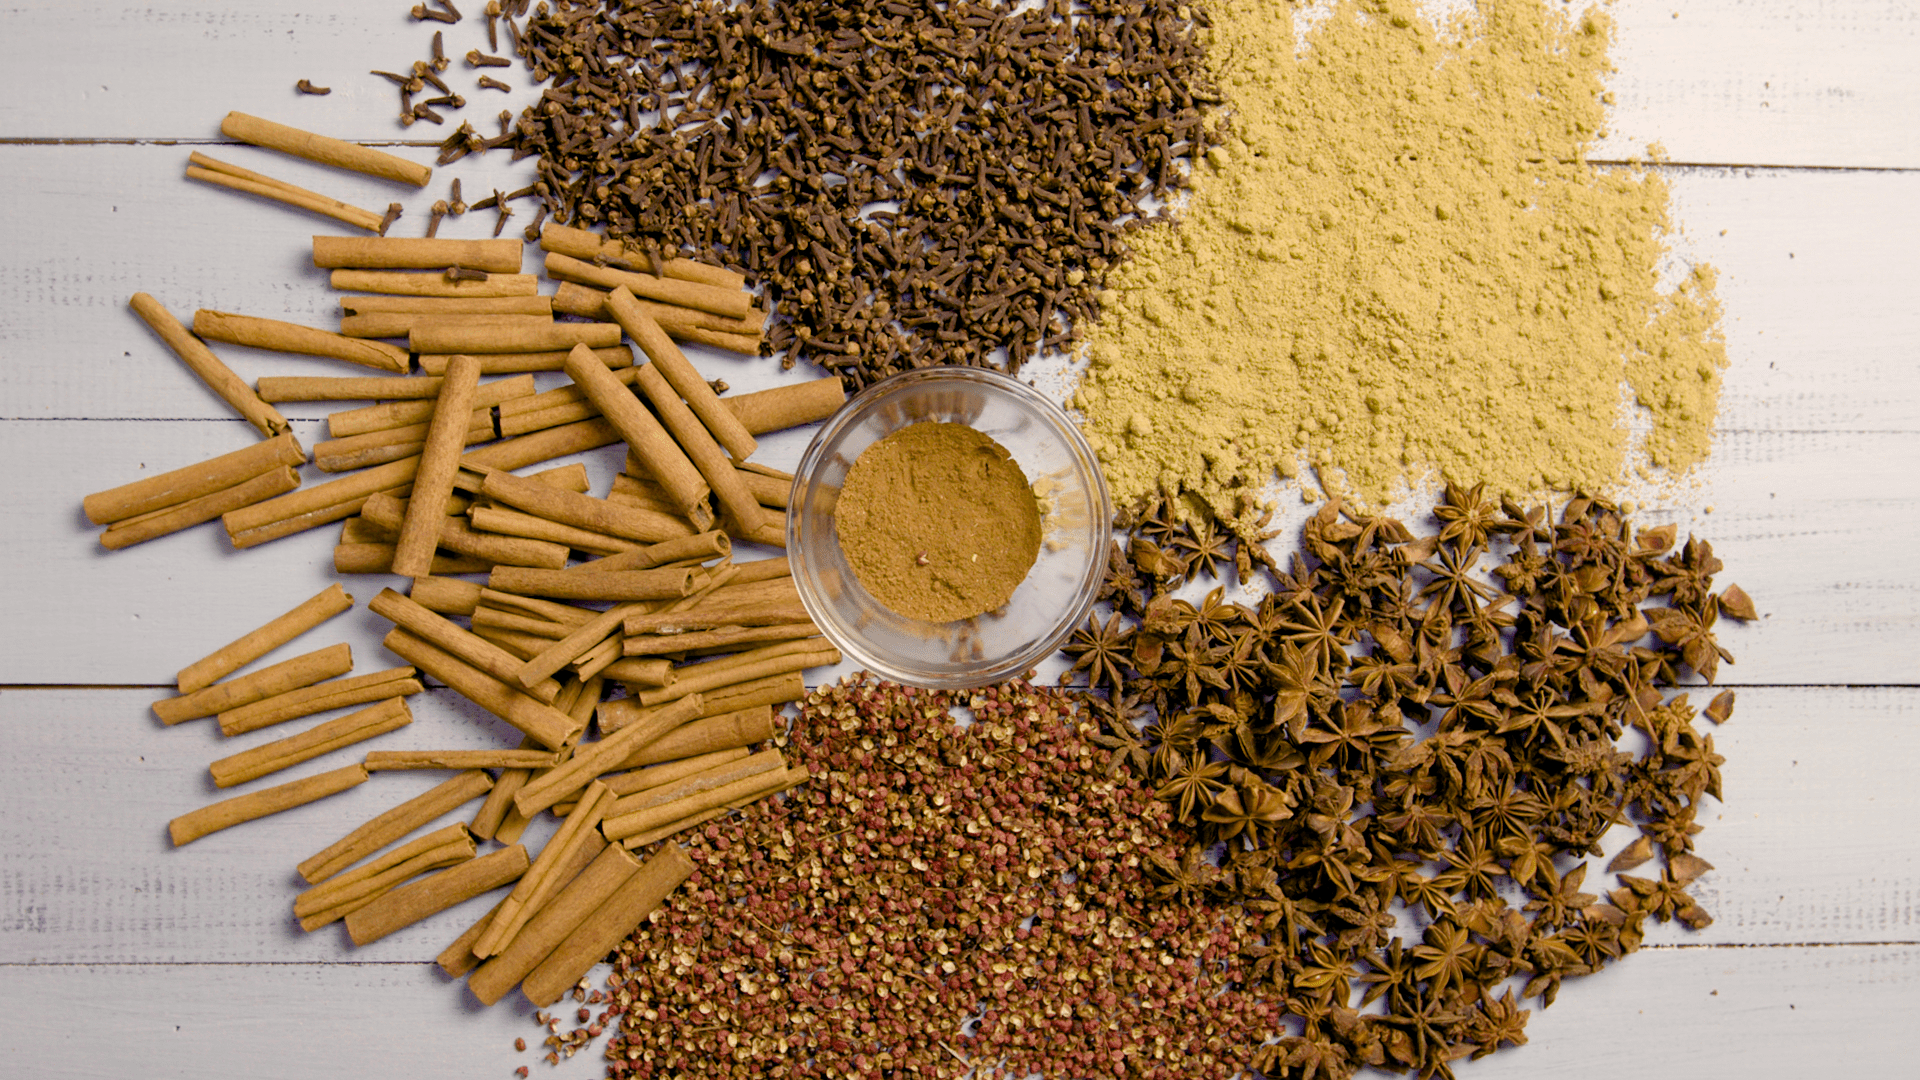 Recipe For How To Make Five Spice Powder